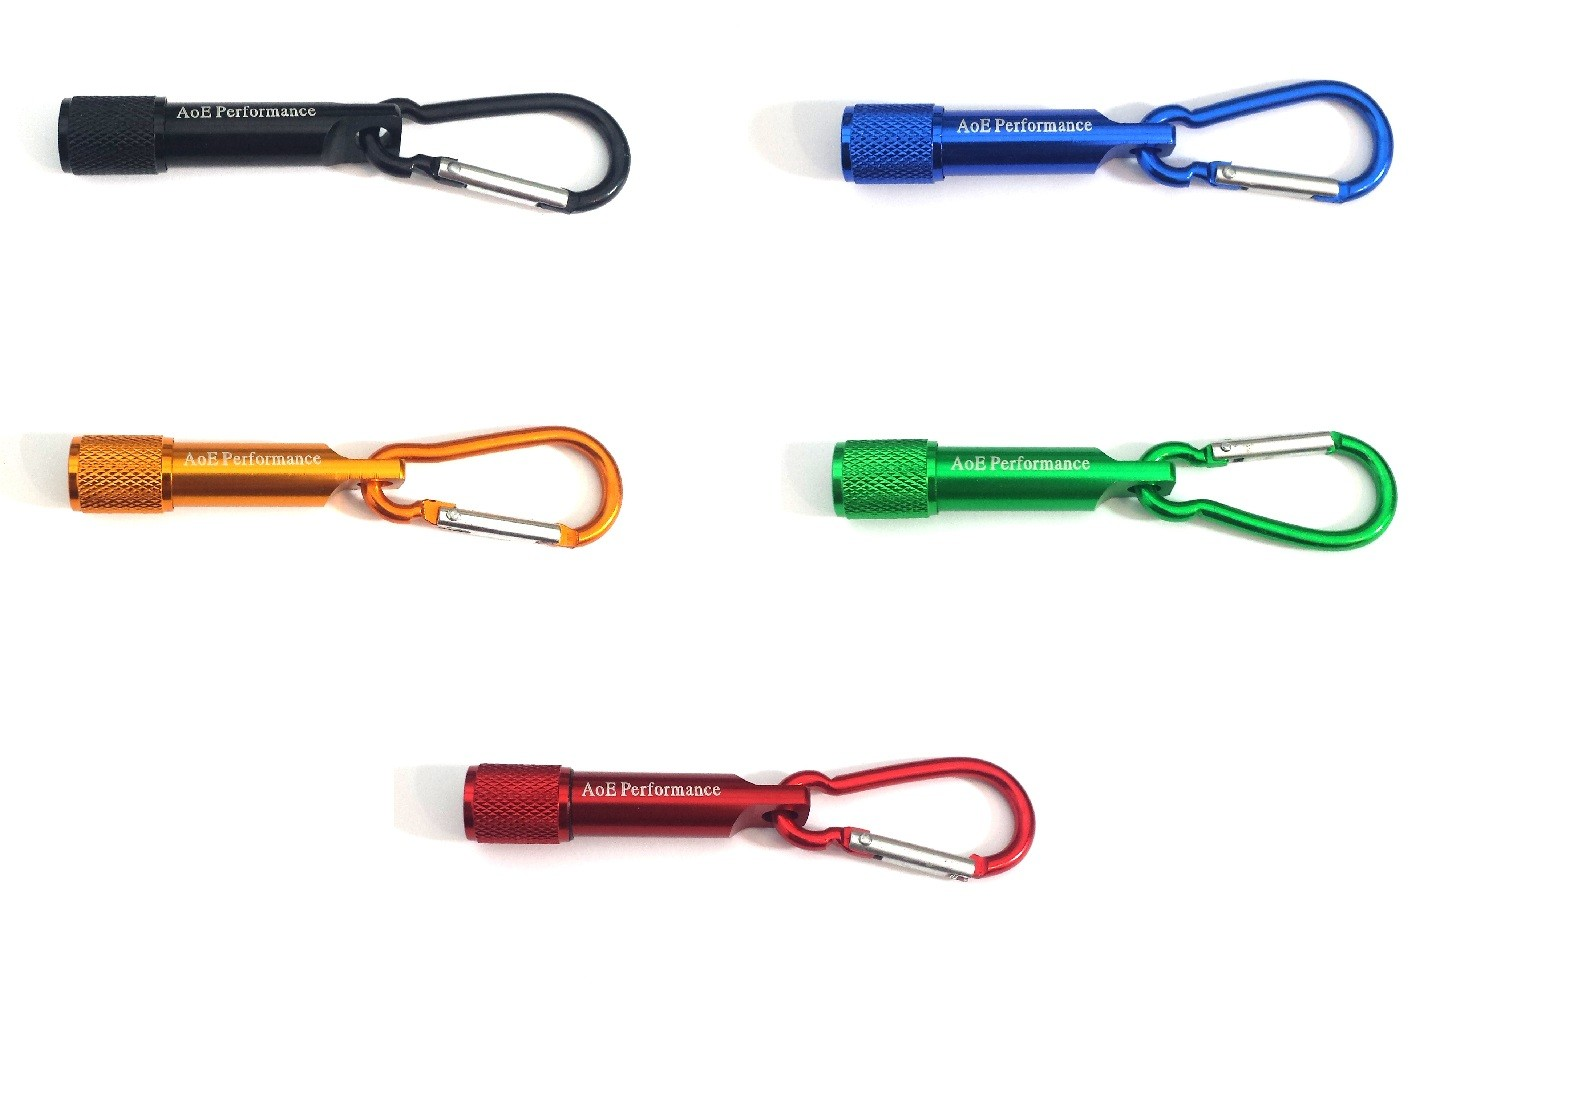 Mini LED Flashlight Torch Key Ring Chain Clip Hook Camping Outdoor Fishing Hiking Safety Emergency Lamp By AoE Performance